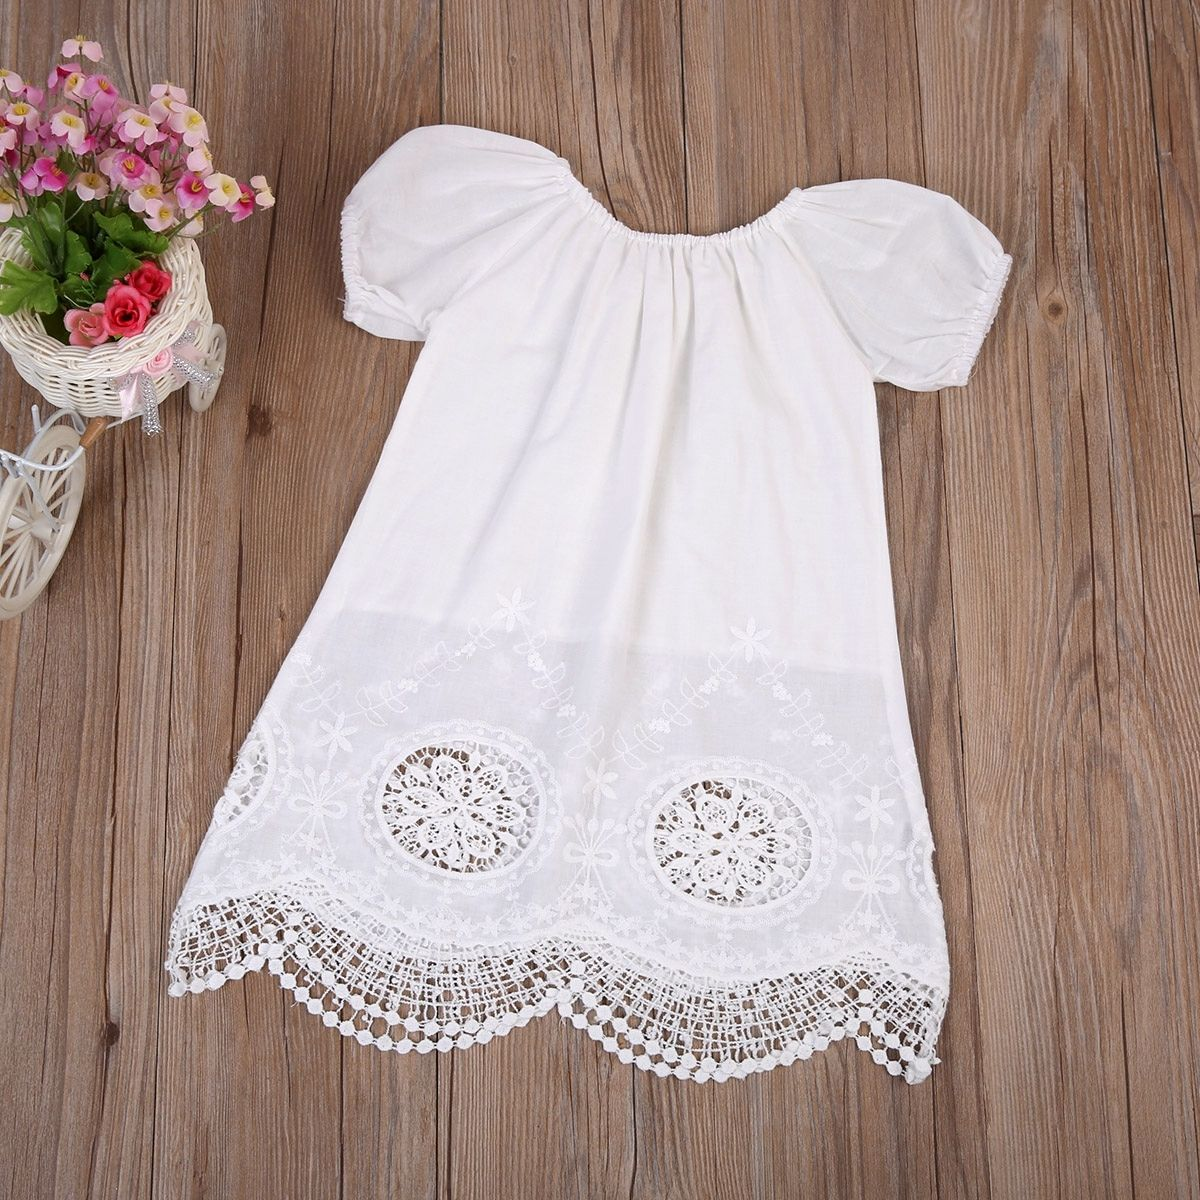 0-4Y Kid Baby Girl Short Sleeve Dress White Lace Cotton Sundress Beach Party Holiday Wedding Girl Dress Tunic Baby Girl Clothing cute summer lace dress infant baby girls princess dress kid girl party wedding cotton short sleeve white a line dresses clothes